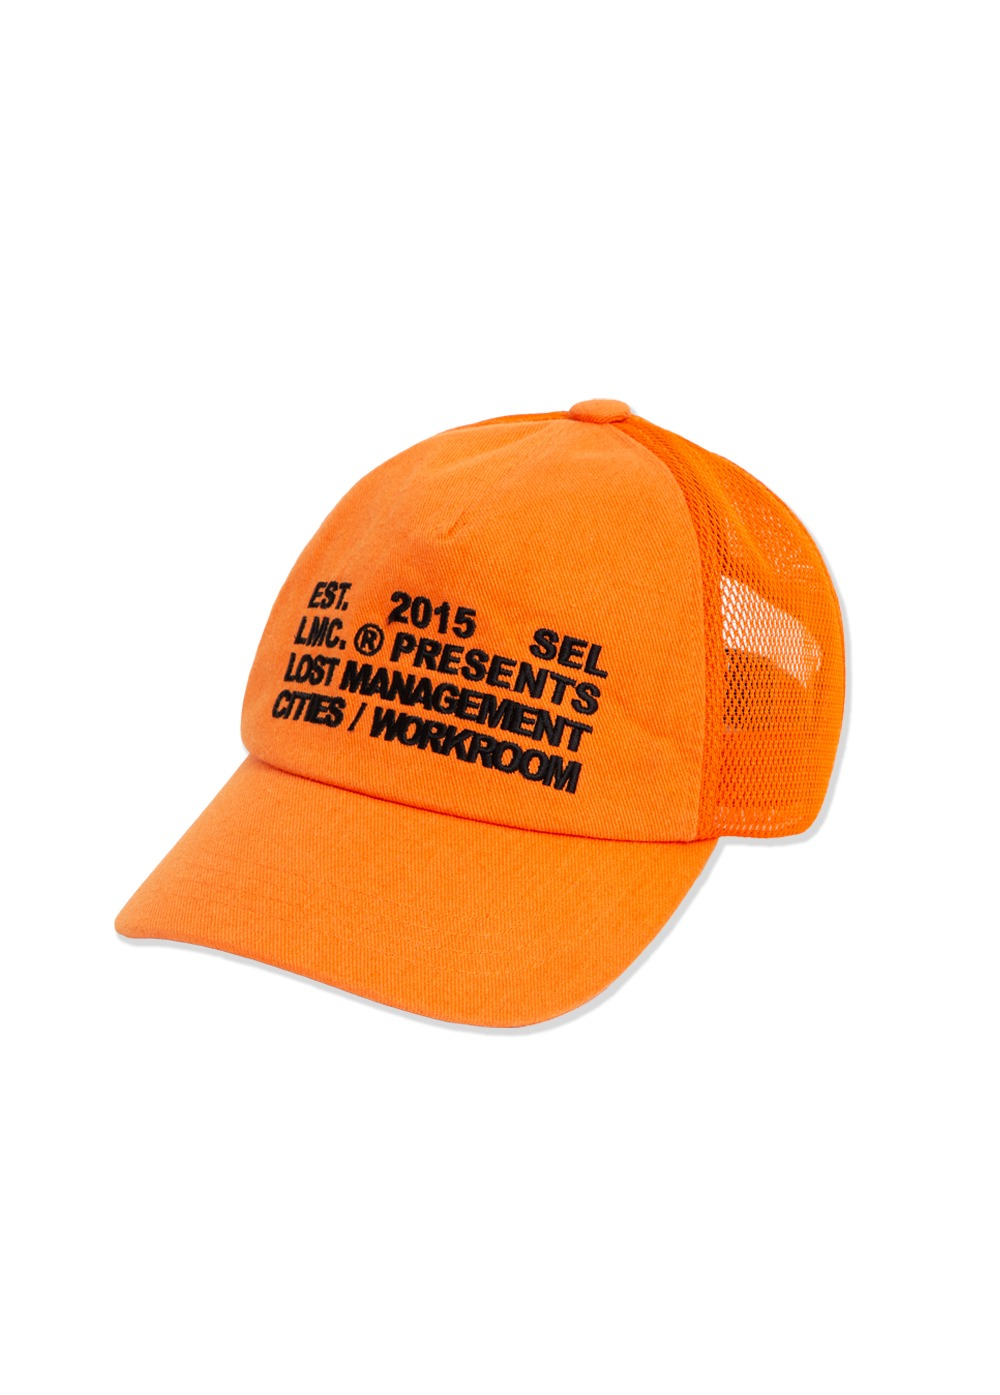 LMC WORKROOM MESH BALL CAP orange